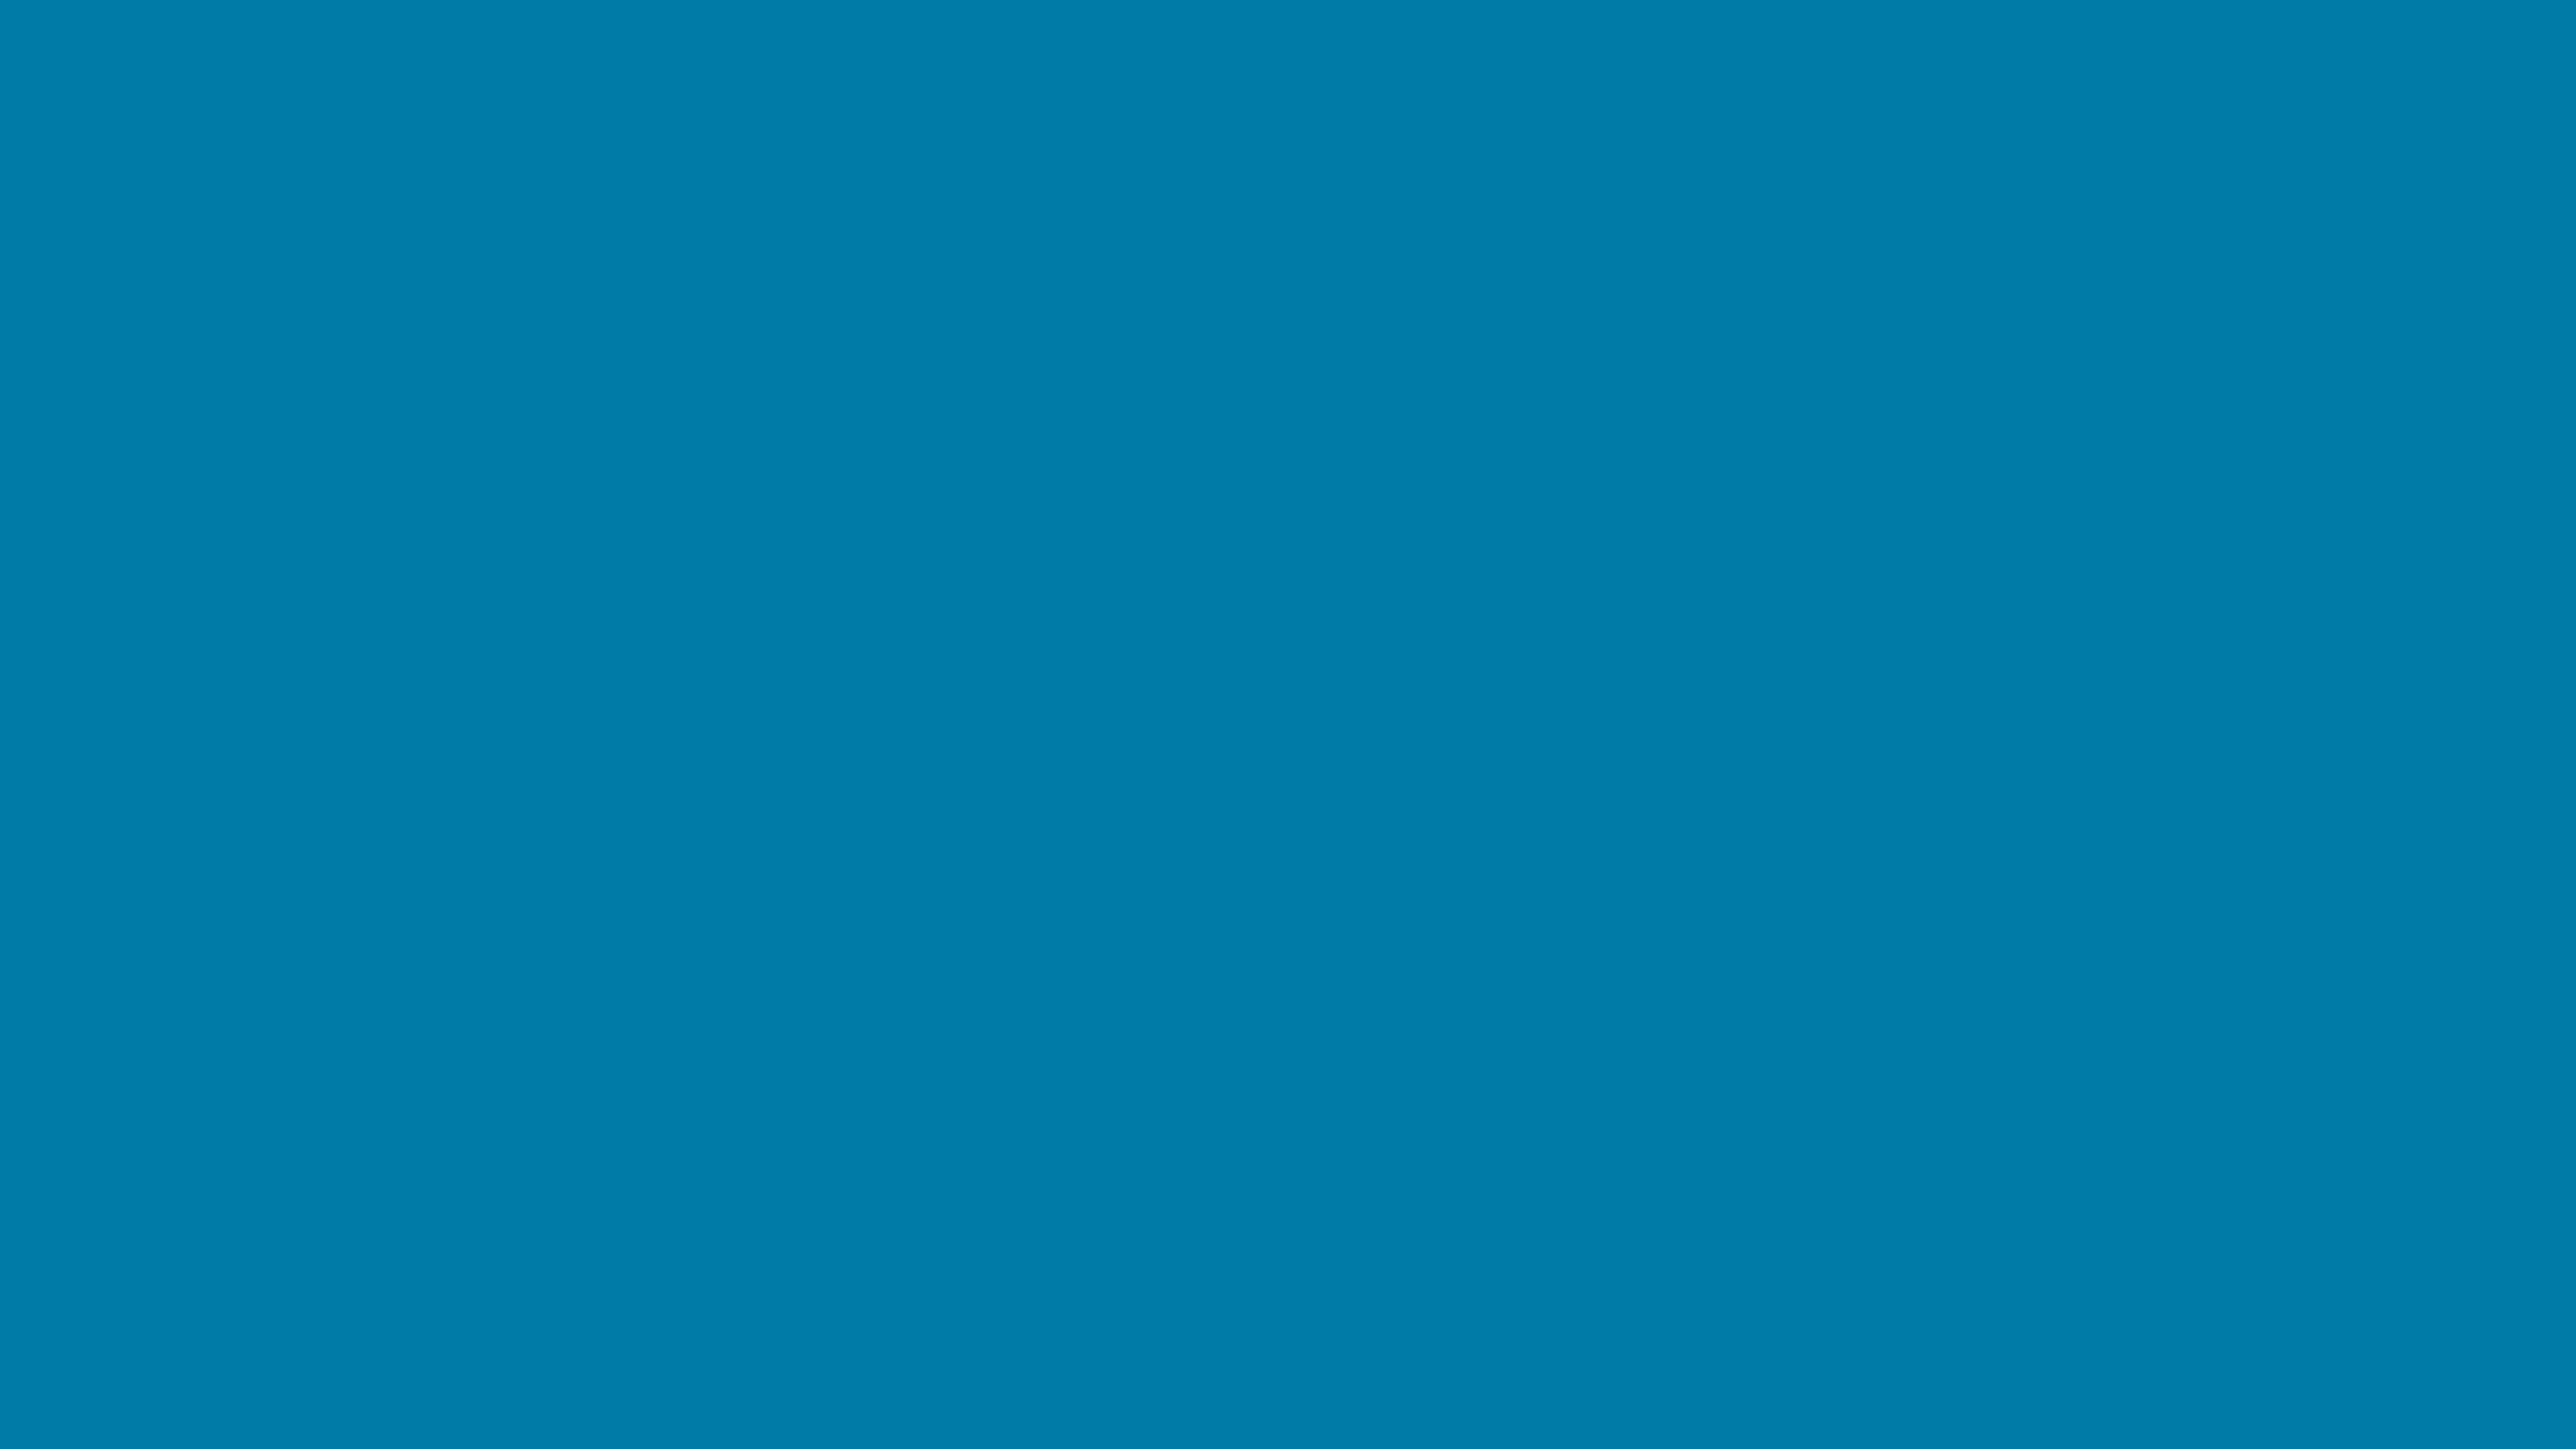 5120x2880 Cerulean Solid Color Background